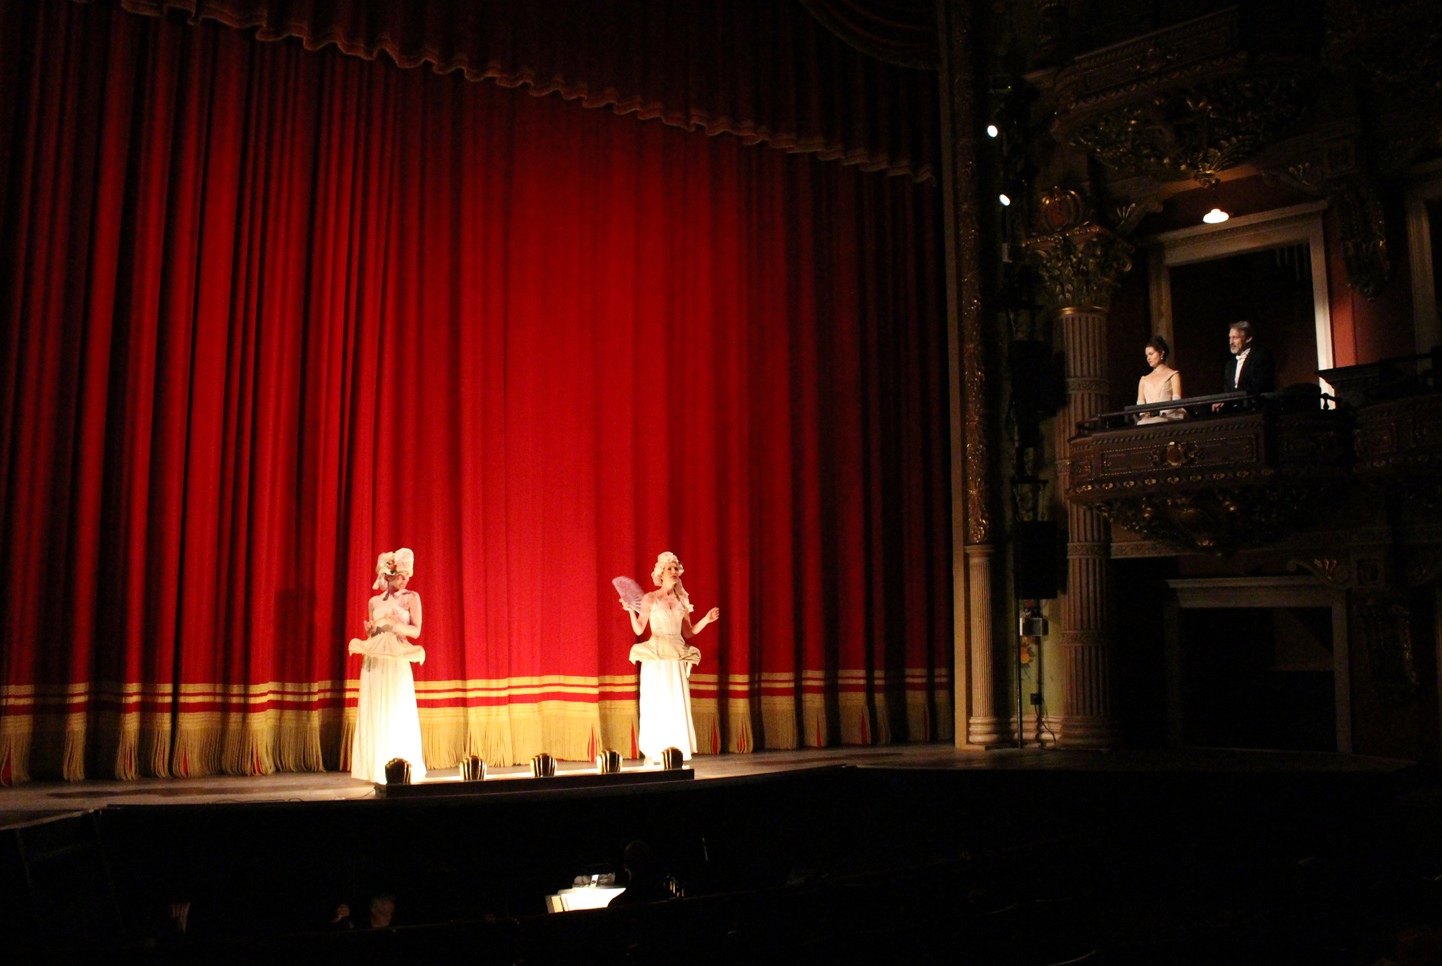 Theater scene - we used the glorious boxes in the house and played in front of the red curtain